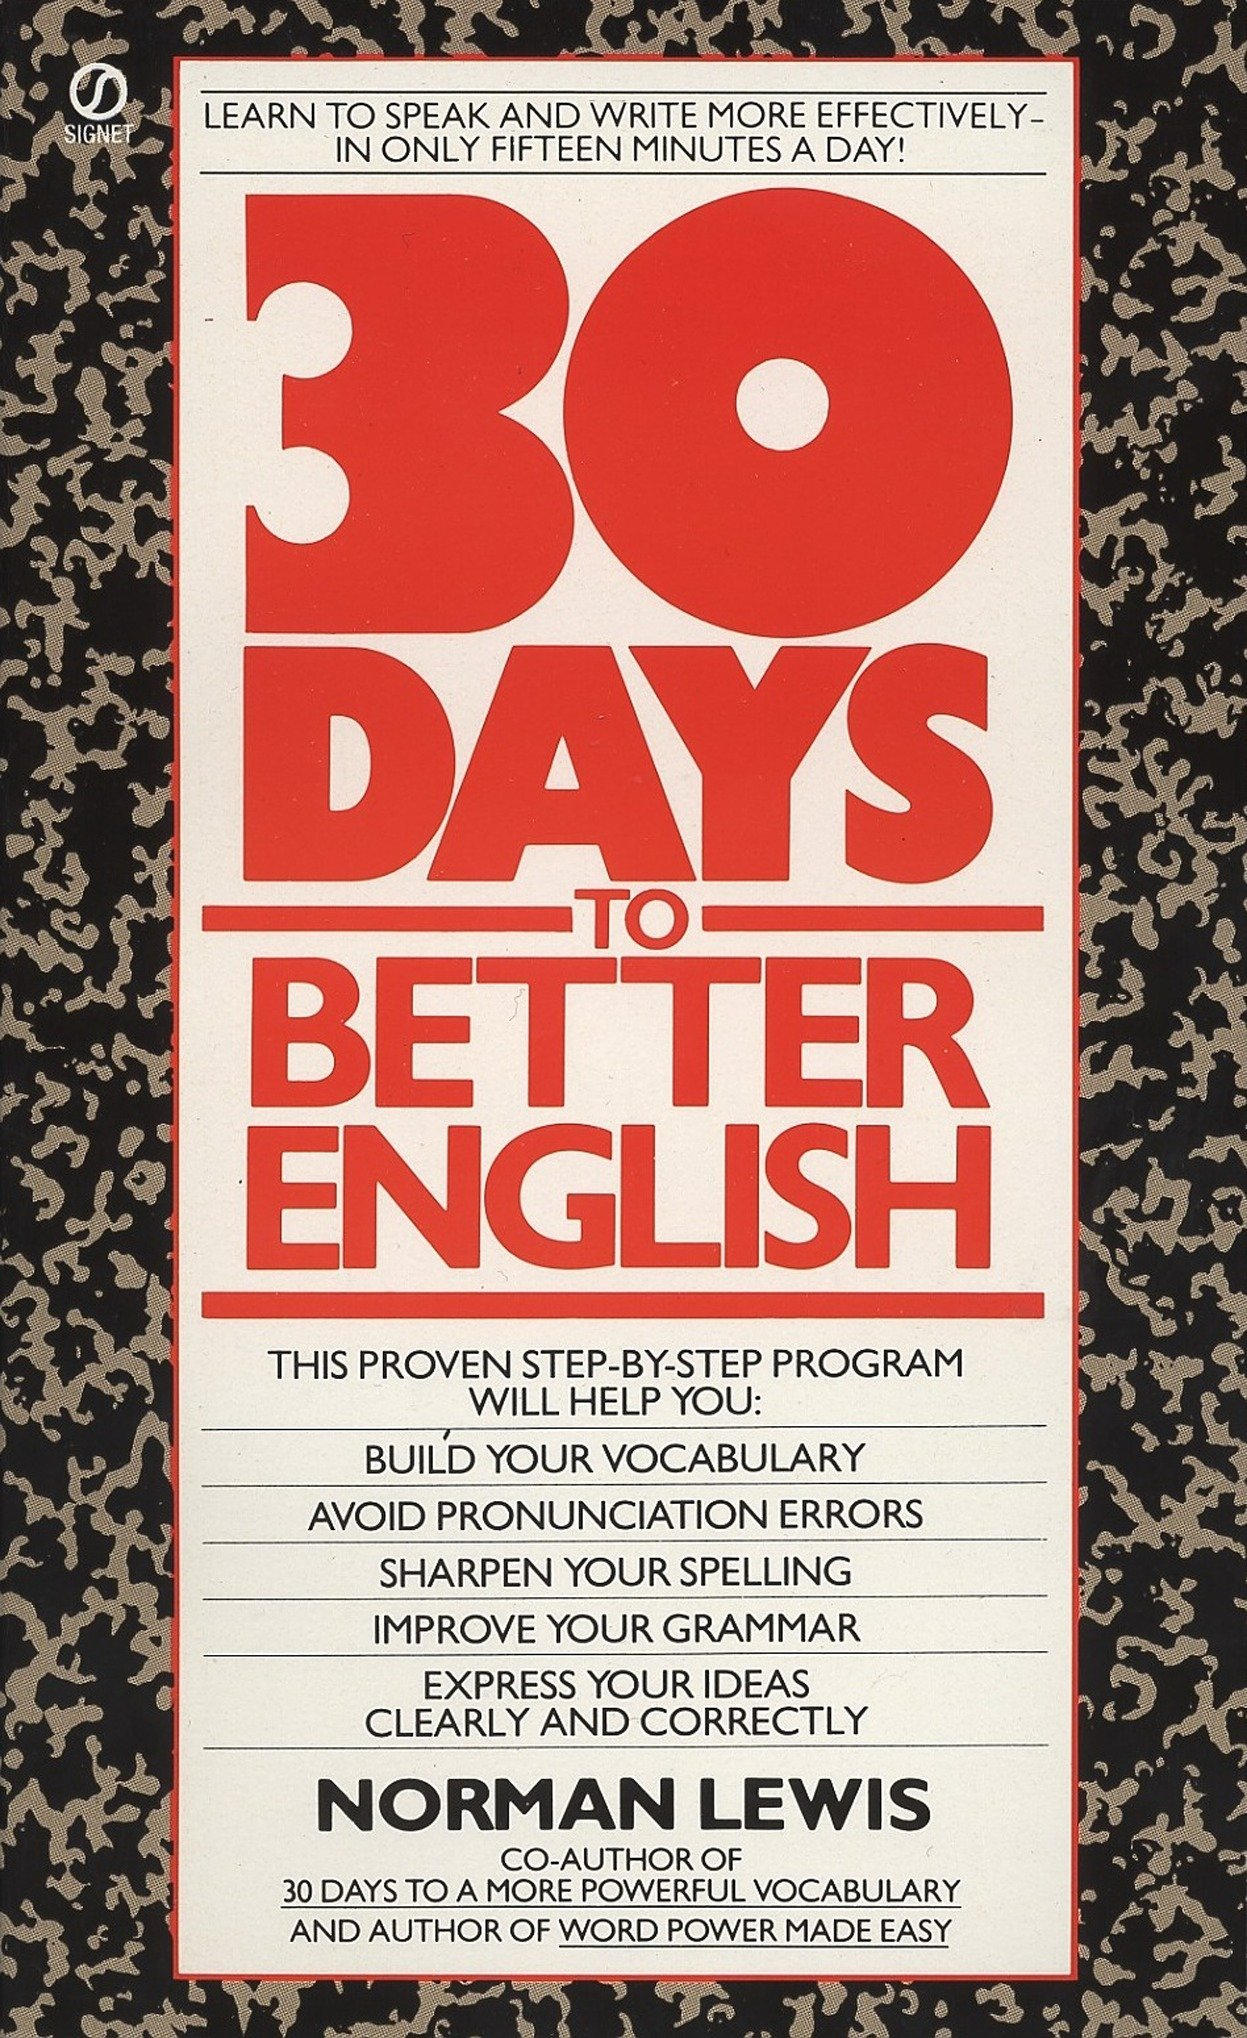 Buy Thirty Days to Better English: Learn to Speak and Write More  Effectively--in Only Fifteen Minutes a Day! (Signet) Book Online at Low  Prices in India ...